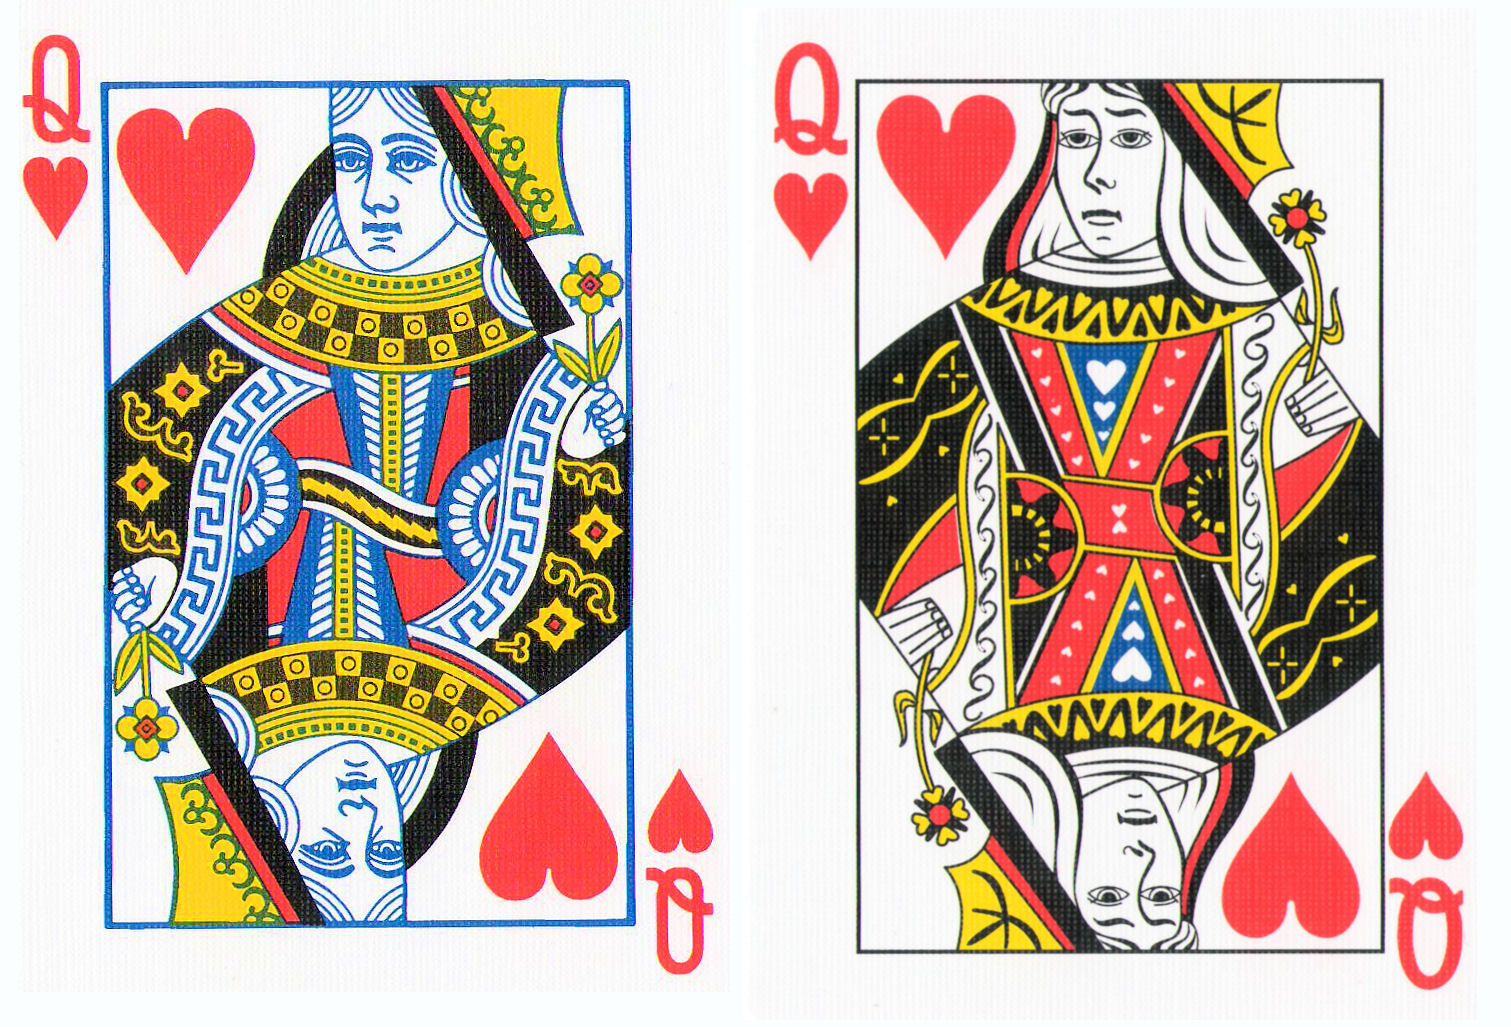 Playing card queen of hearts clipart cute png transparent library Playing card queen of hearts clipart cute - ClipartFest png transparent library